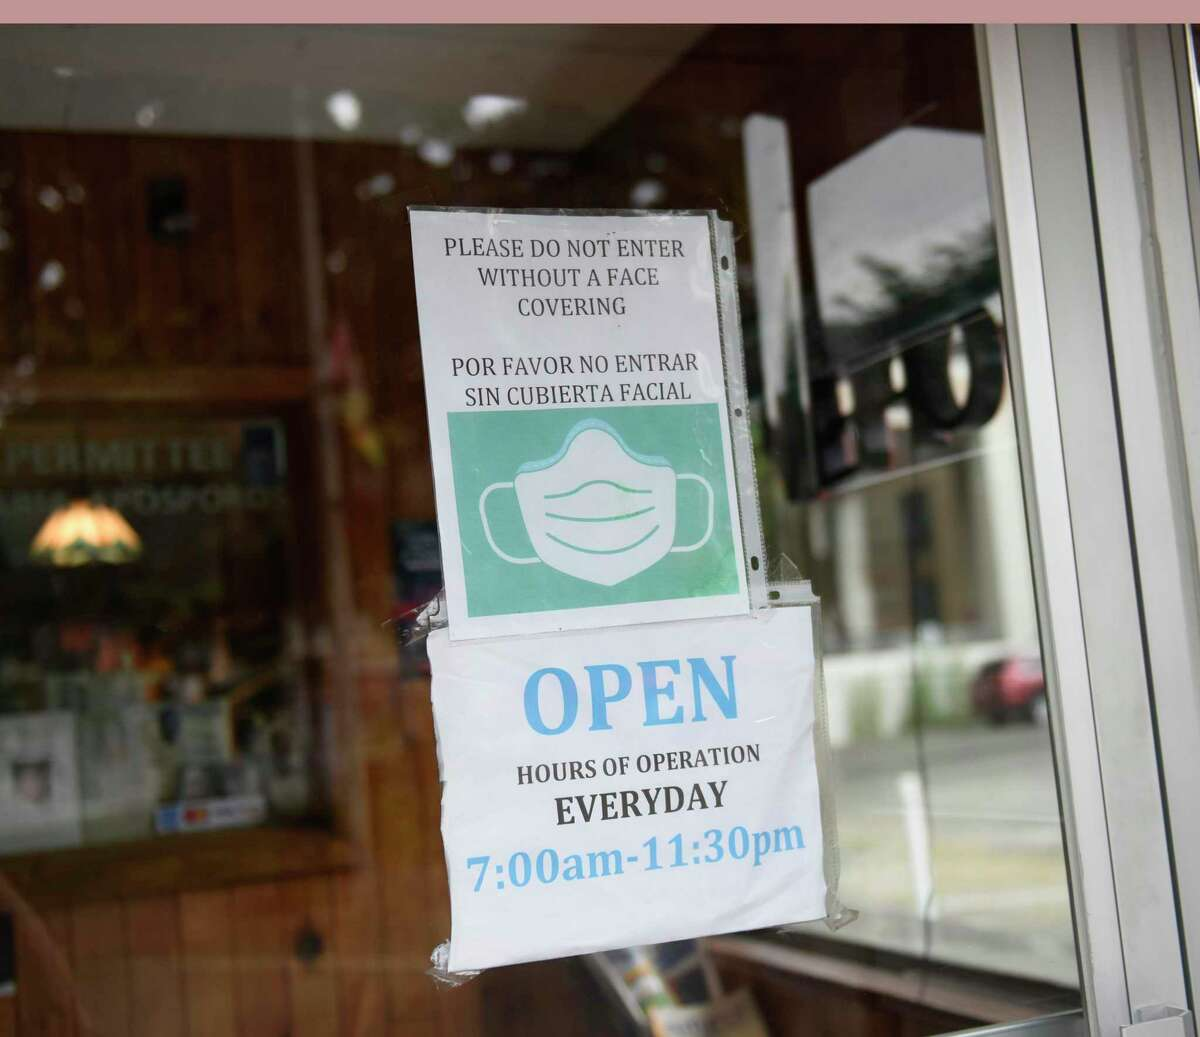 A sign requires face masks at Curly's Diner in Stamford, Conn. Wednesday, Aug. 4, 2021. COVID cases are on the rise again and the state Department of Health has recommended that anyone over the age of 2 wear a mask indoors regardless of vaccination status.